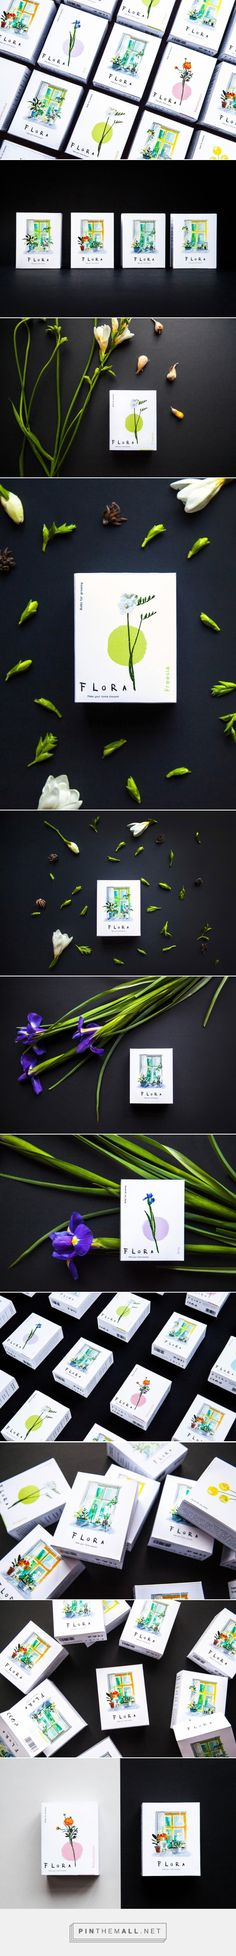 Flora packaging (concept) / Flora is a brand producing flower bulbs for indoor germination. It is represented by four plant species: Freesia, Ranunculus, Iris, Crospedia /  by LOCO Studio